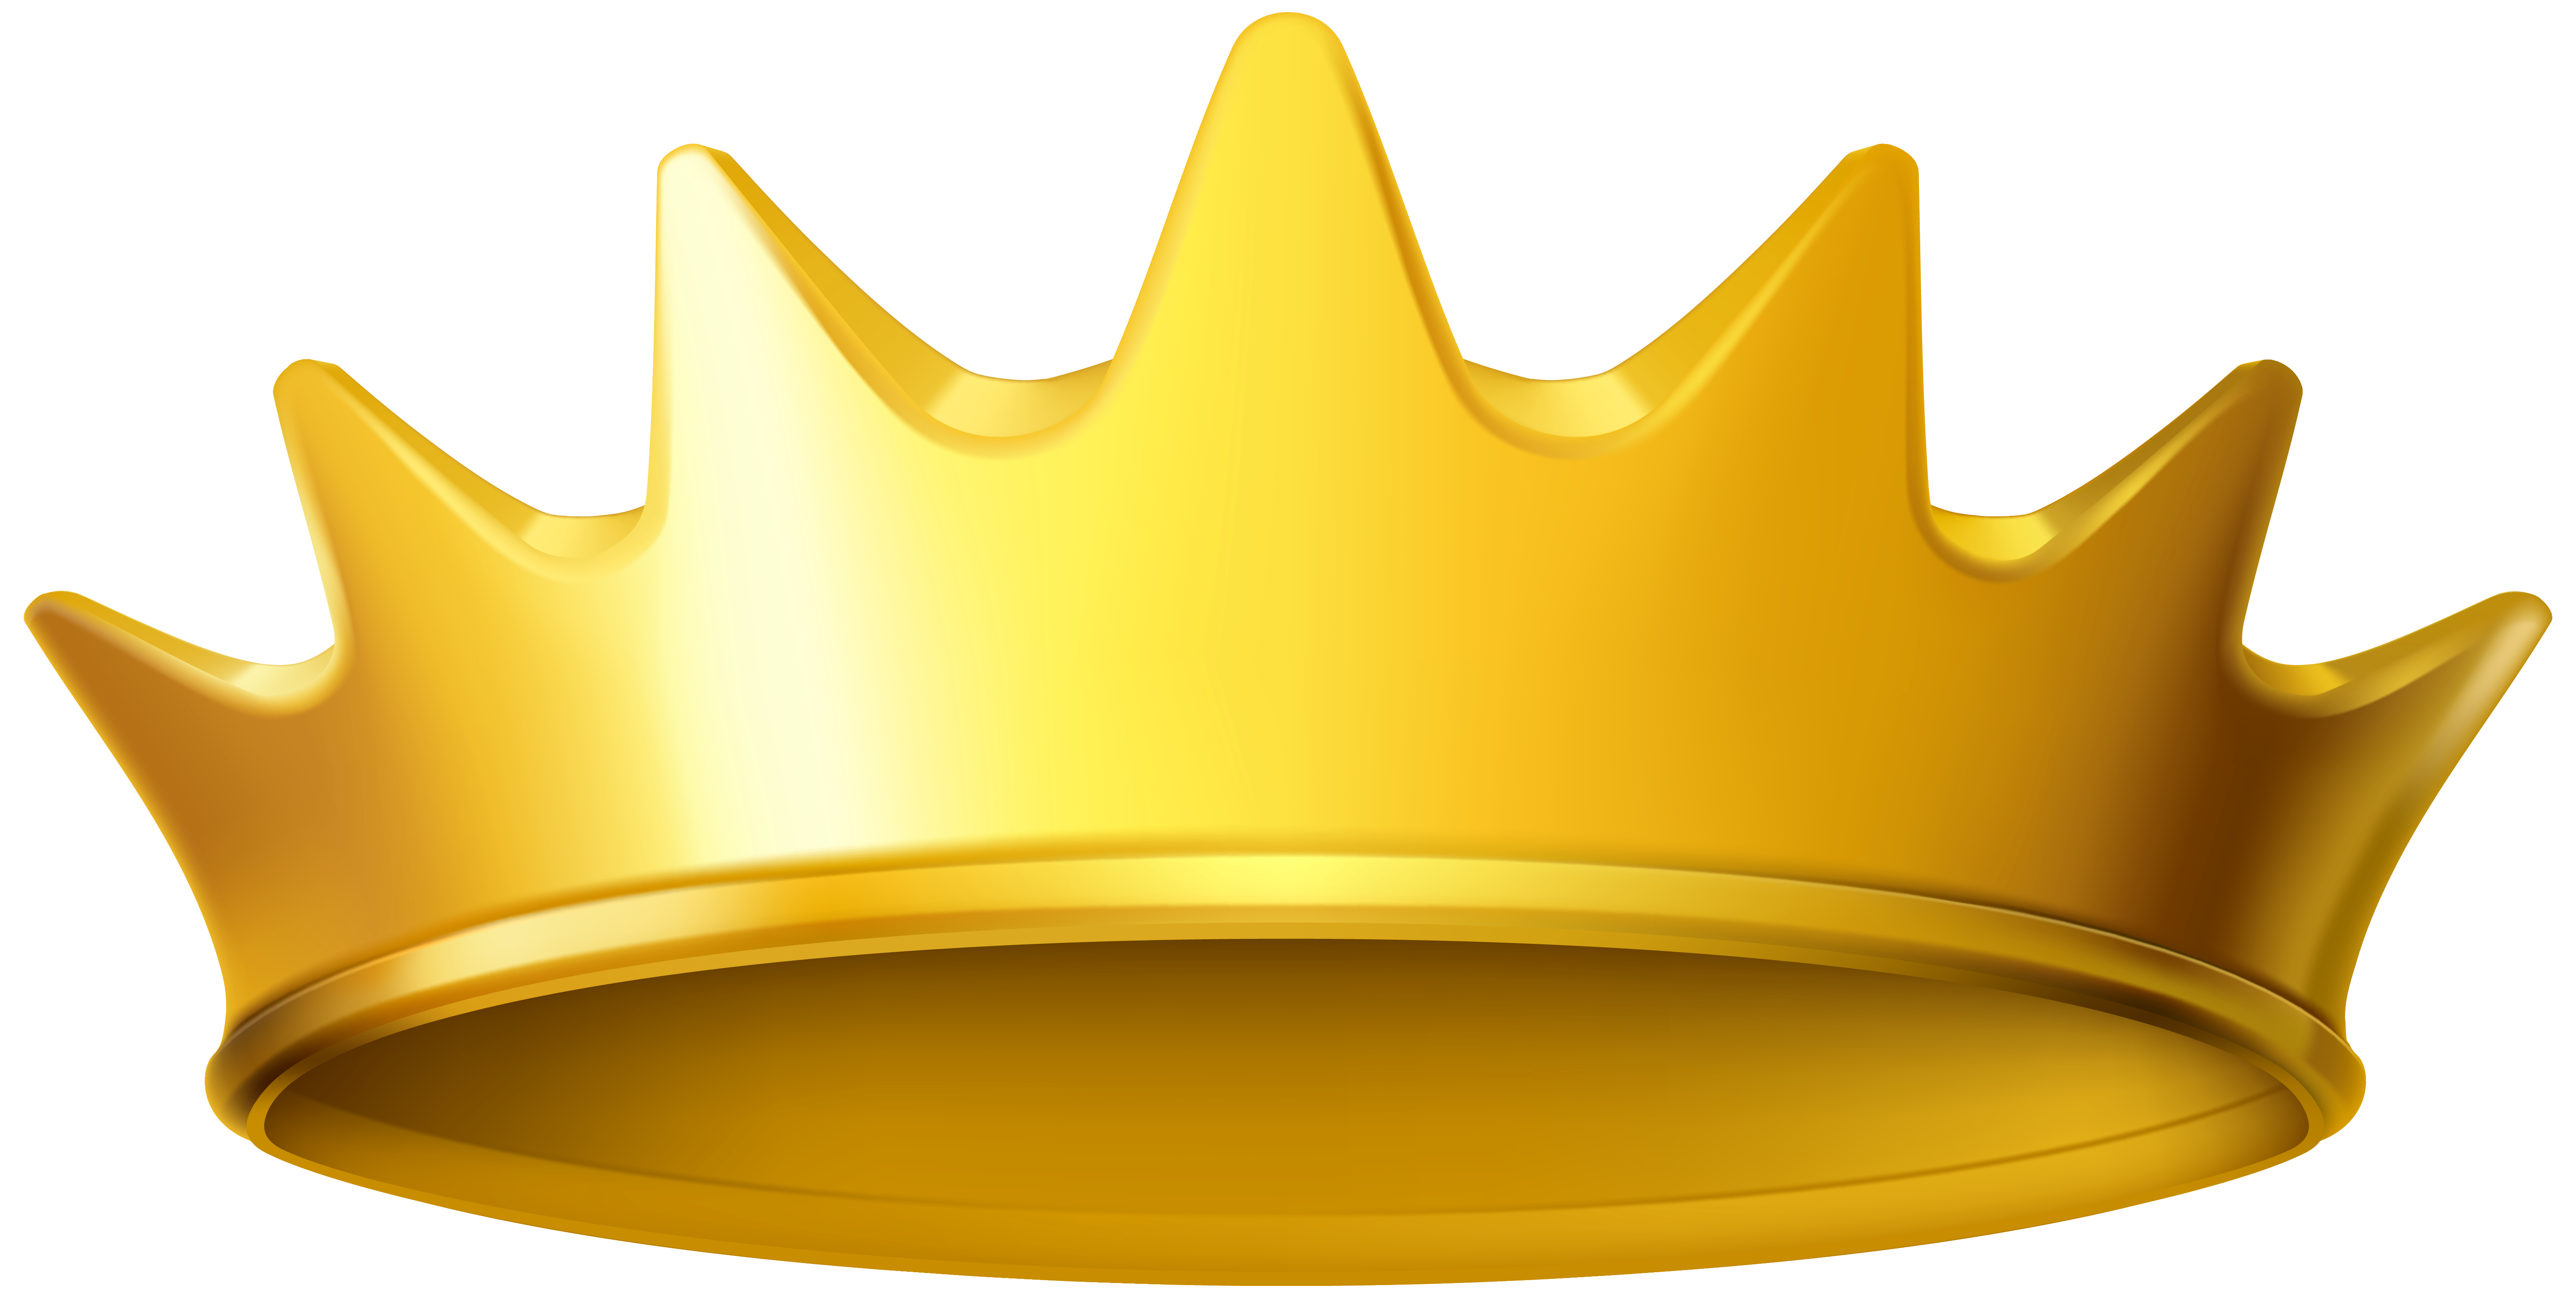 png royalty free download Crowns clipart. Golden crown png image.